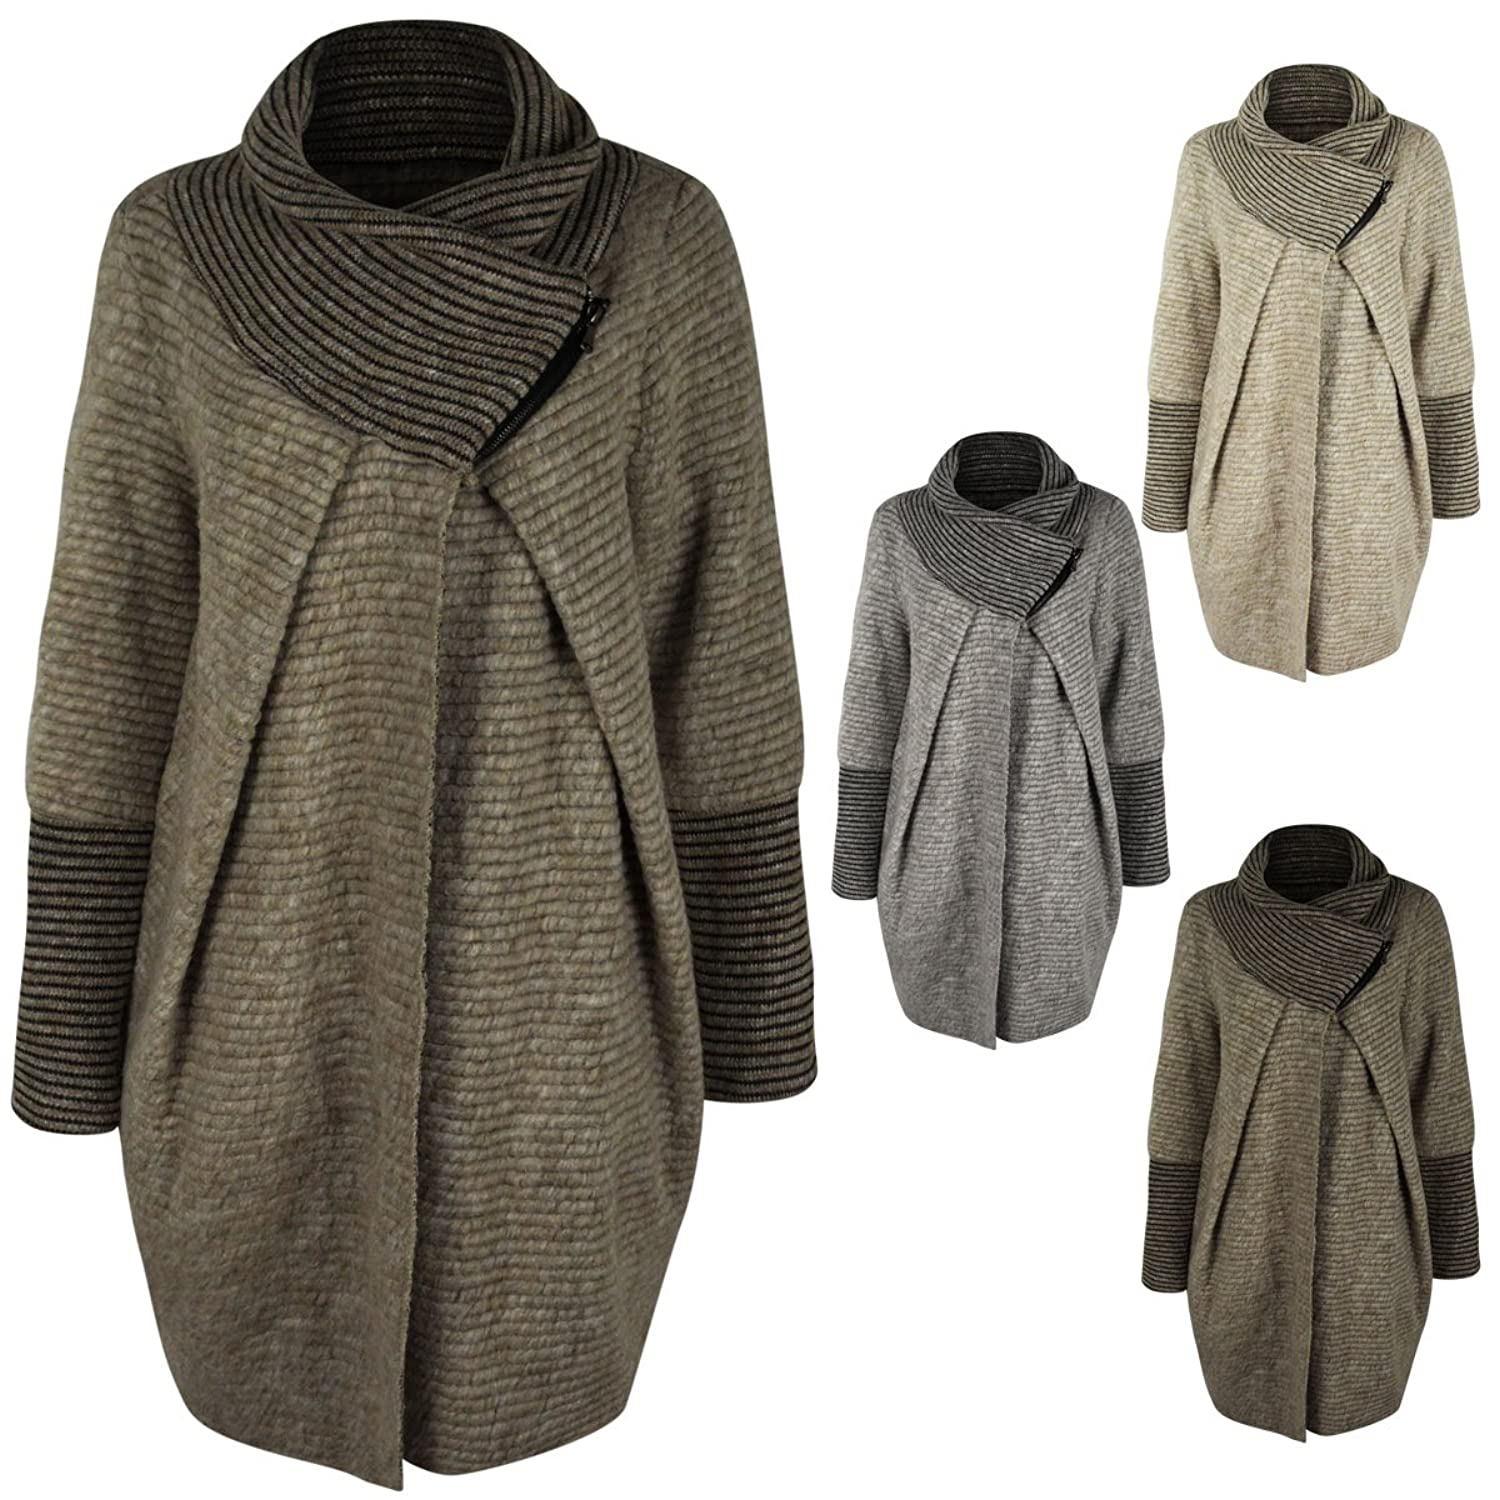 LADIES WOMENS OVERSIZED WRAP CARDIGAN BAGGY TURTLE NECK JUMPER ...